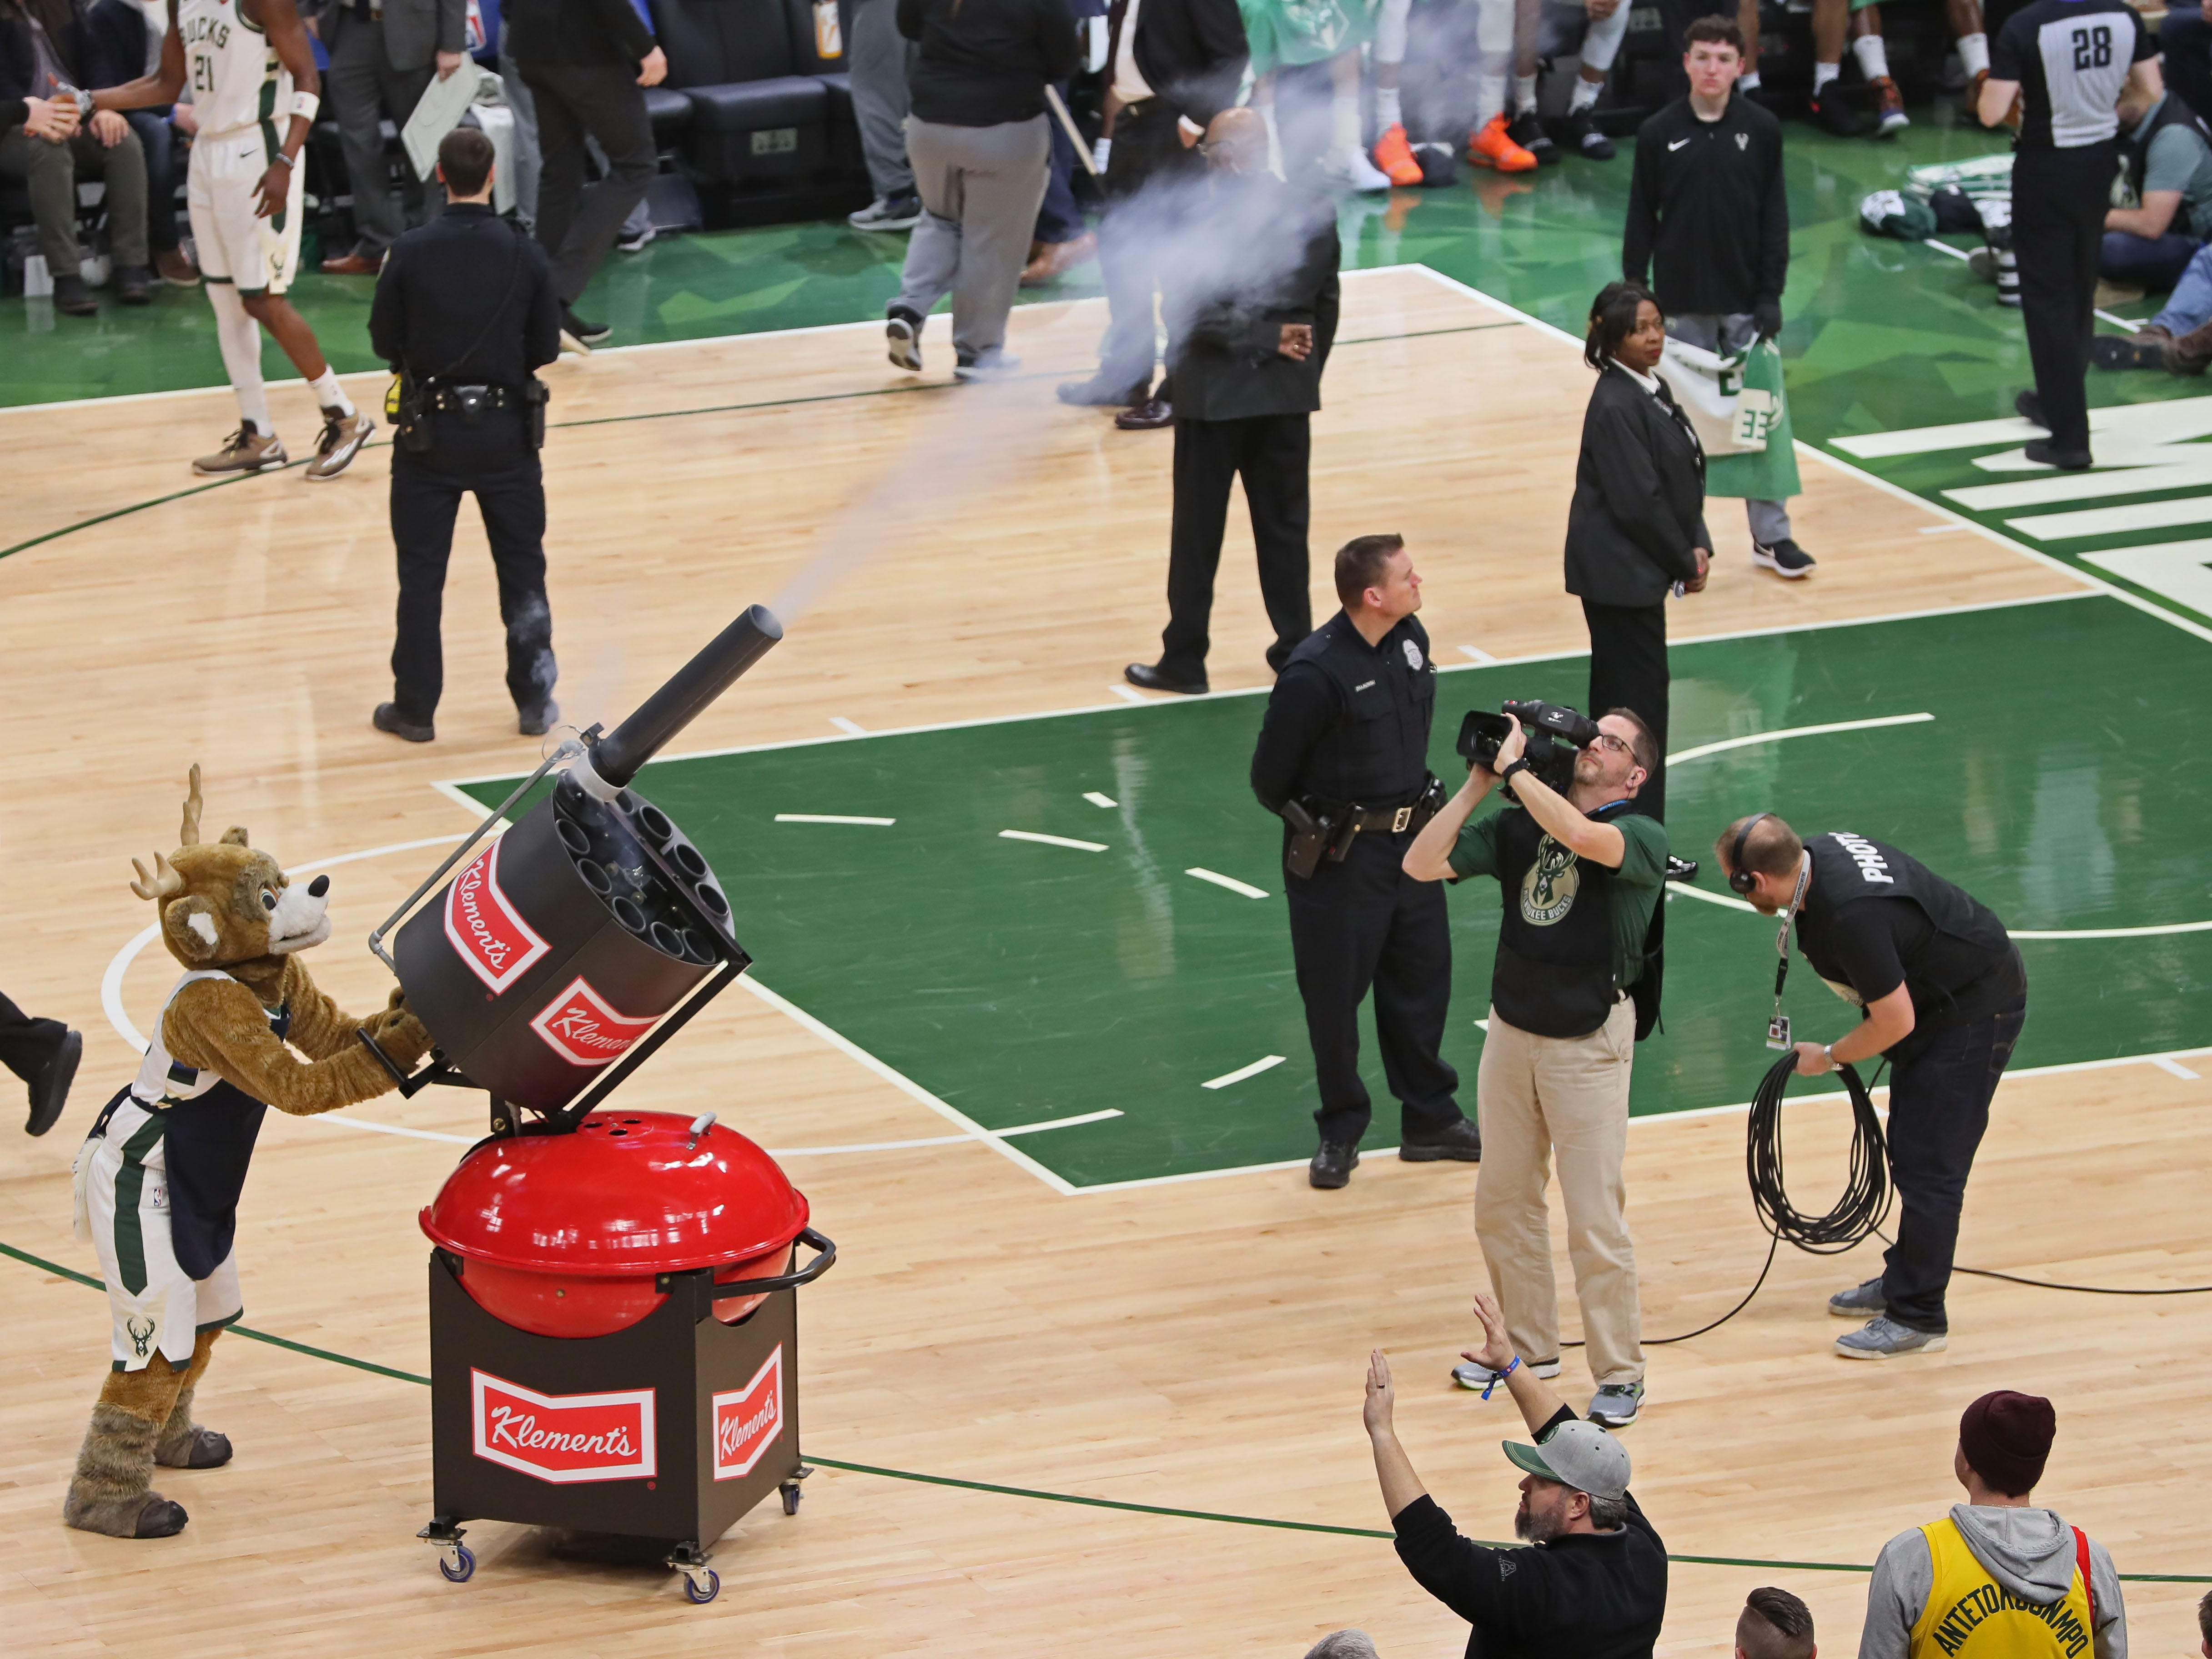 Bango launches T-shirts into the crowd during a timeout in the game between the Bucks and Wizards.